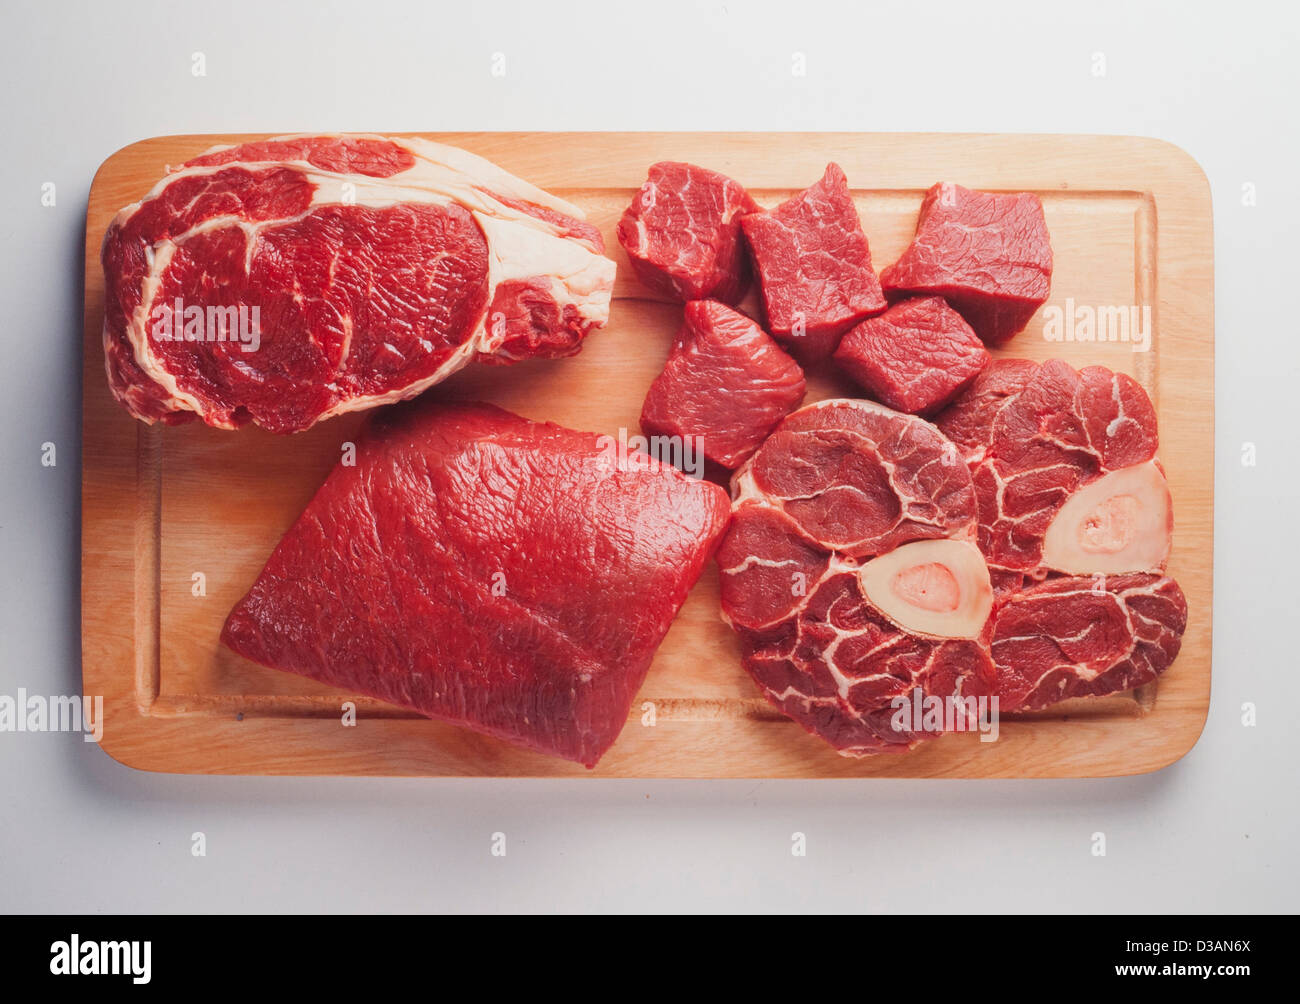 table with different cuts of raw beef - Stock Image